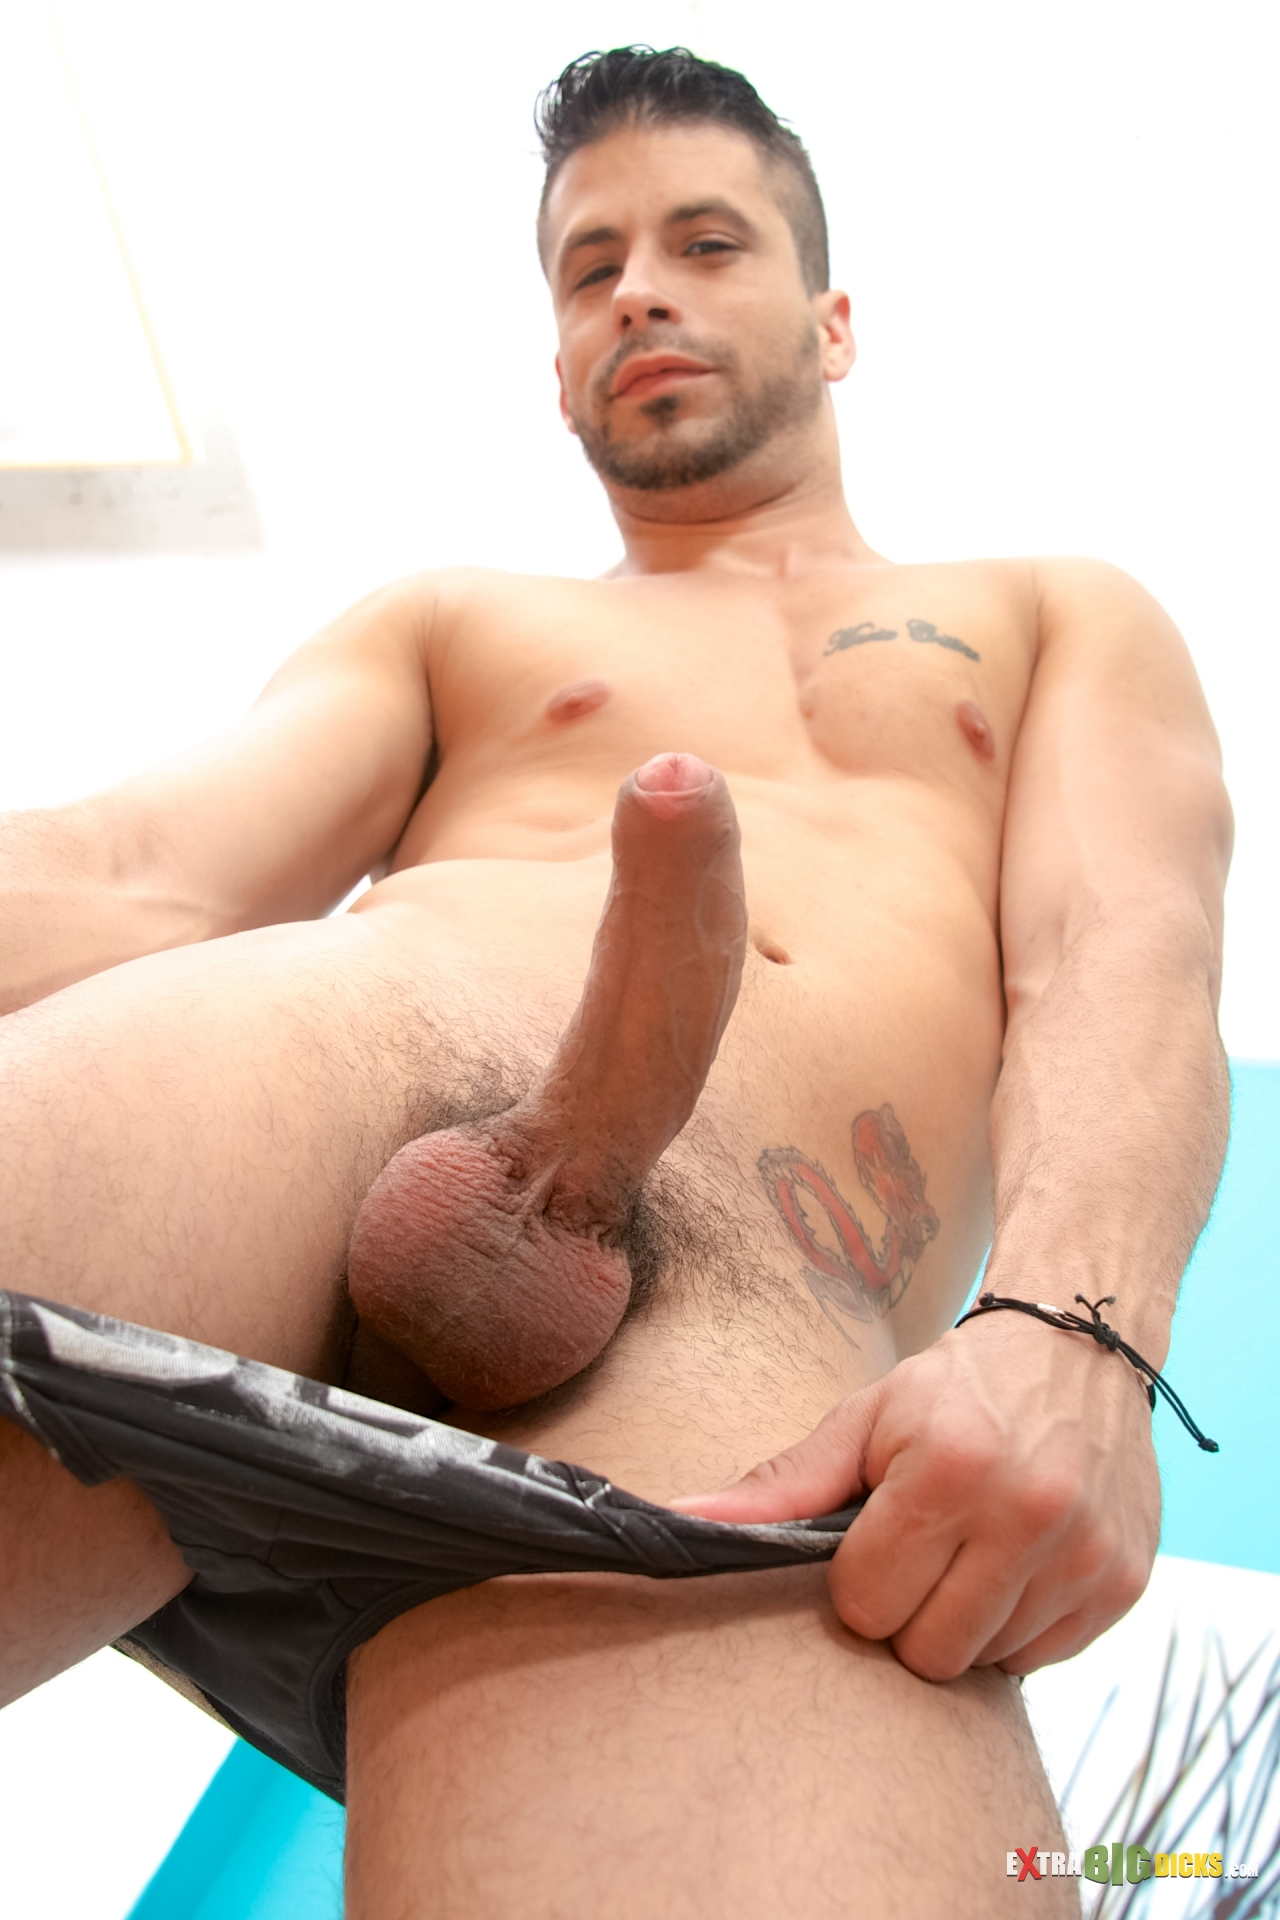 large penis gay porn XVIDEOS gay-big-cock videos, free.